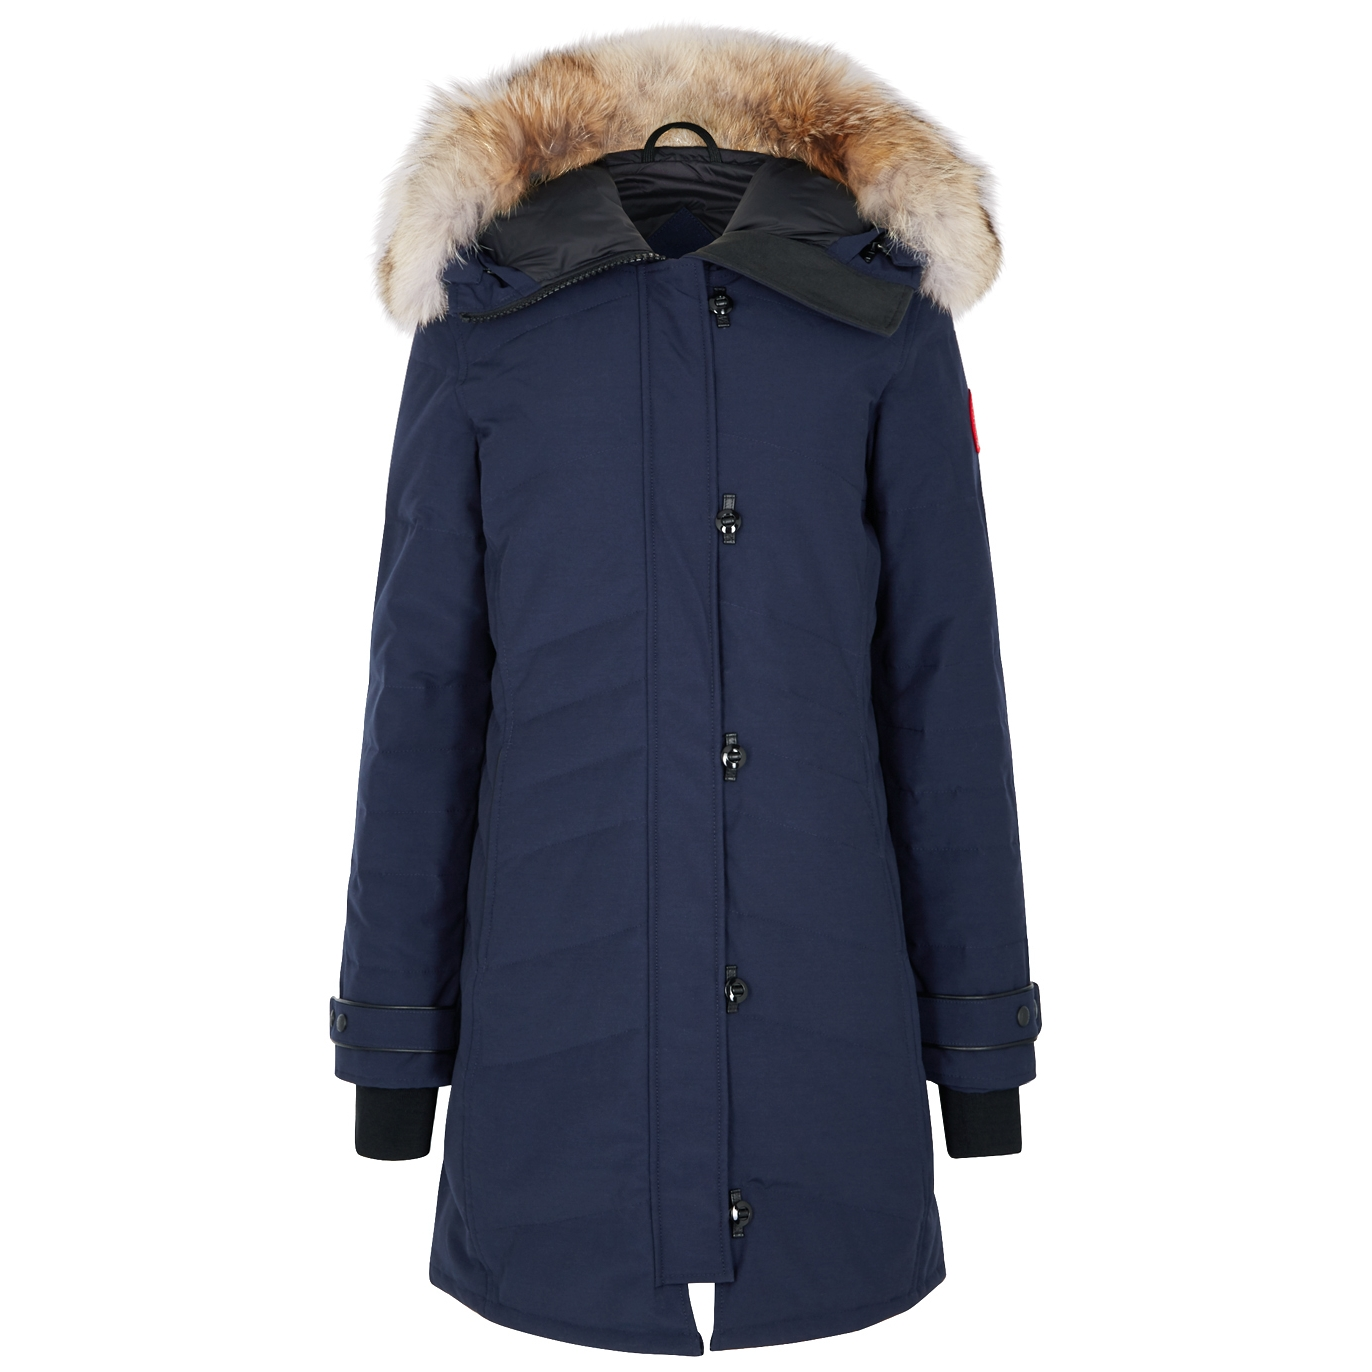 463b047335c2 Lorette navy fur-trimmed parka. £925.00. Take on the elements in Canada  Goose s ...